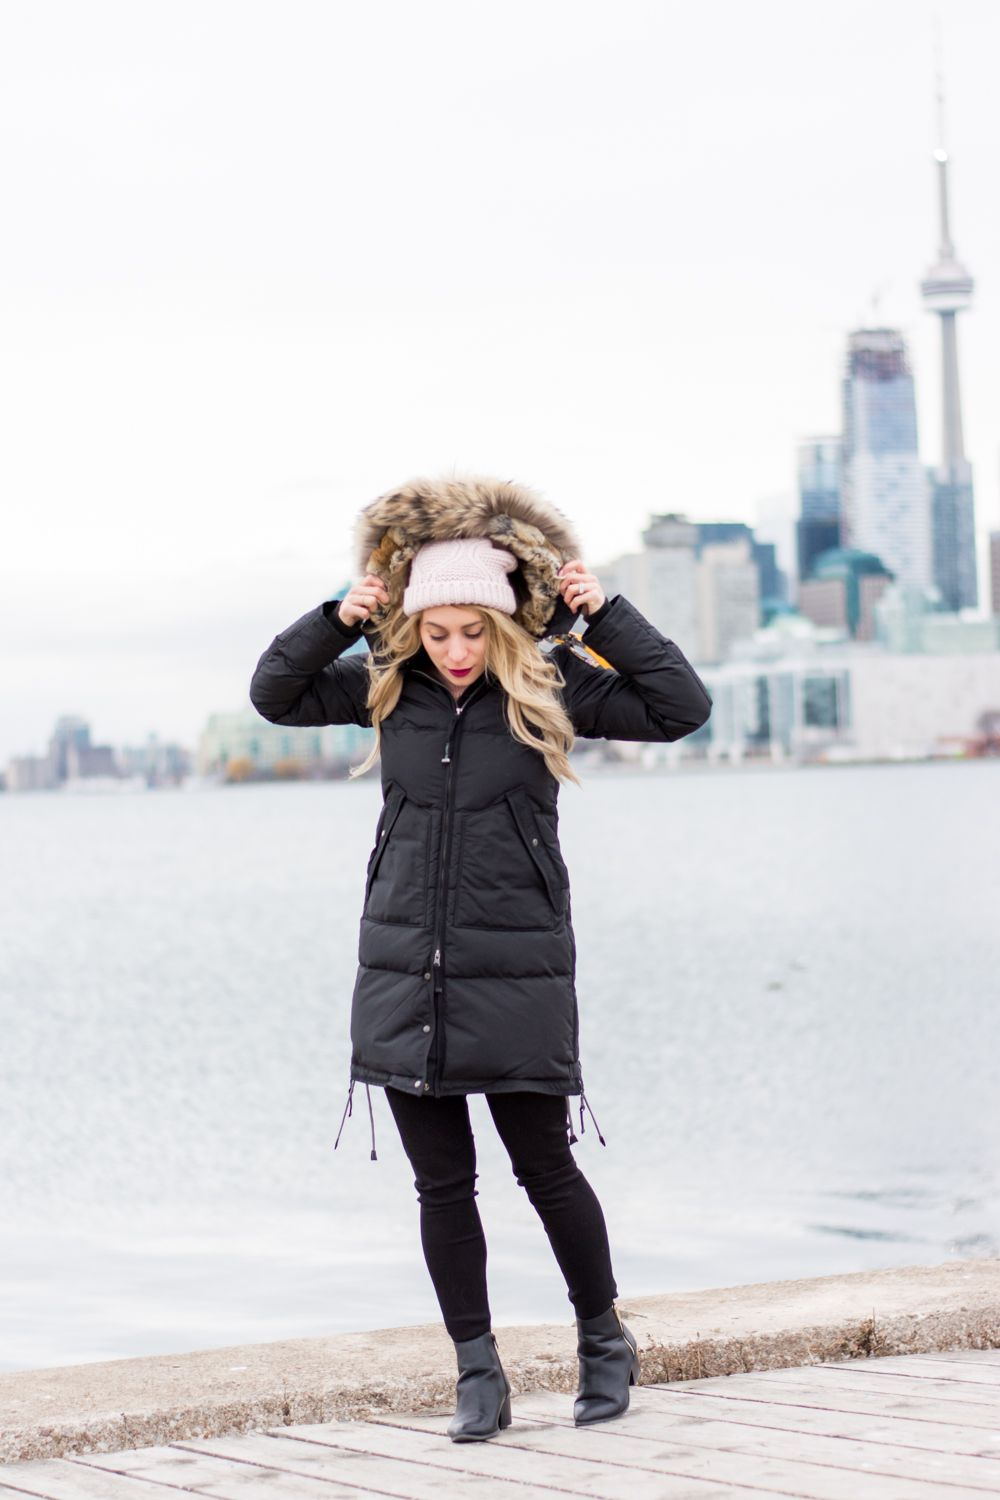 OOTD - ParaJumpers Long Bear Parka | La Petite Noob | A Toronto-Based Fashion and Lifestyle Blog.